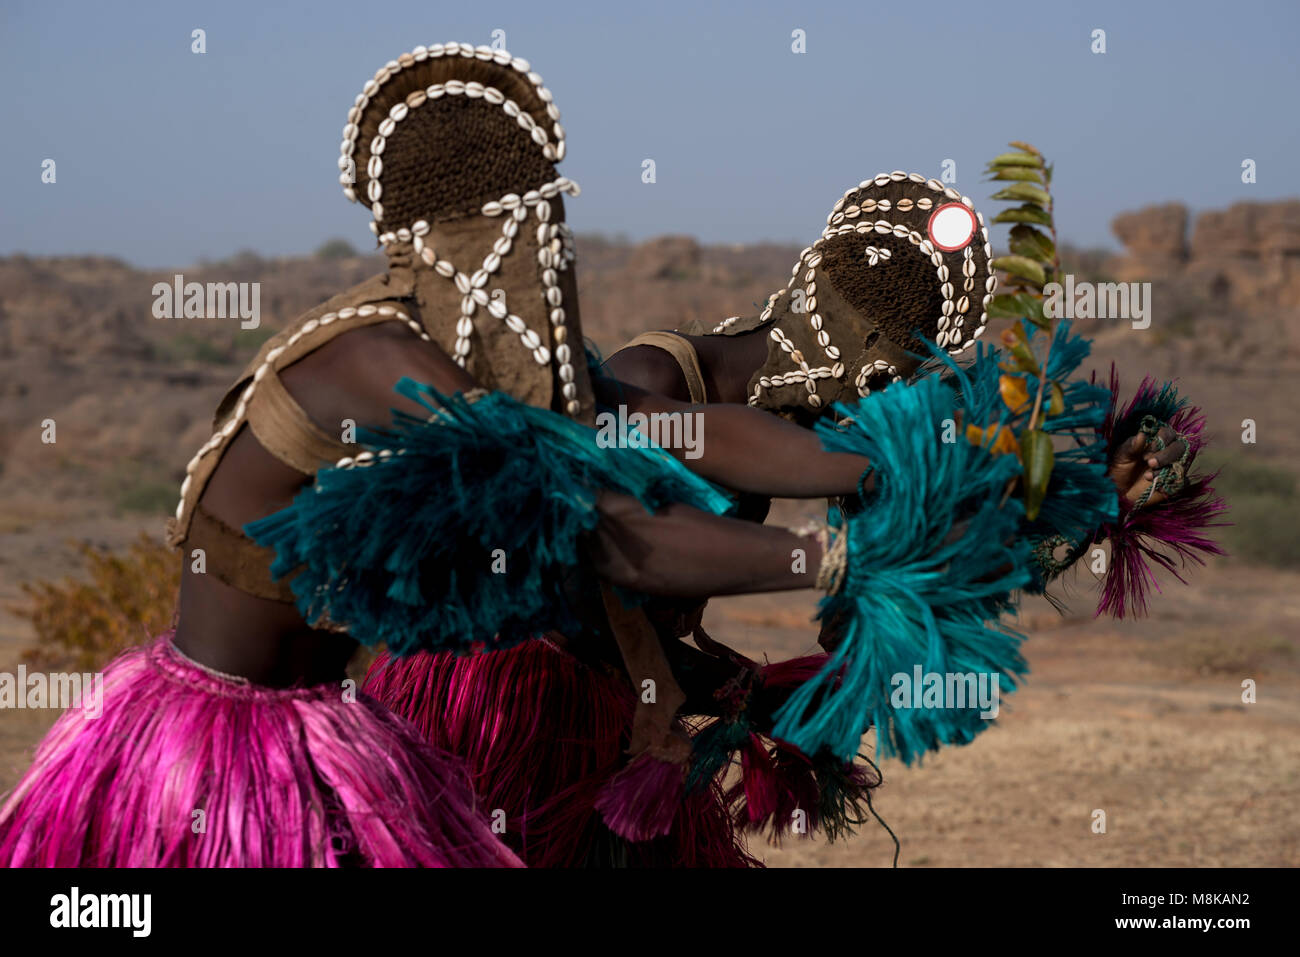 Indigenous Dogon masked dancers engaged in a ritualistic tribal dance. Mali, West Africa. - Stock Image